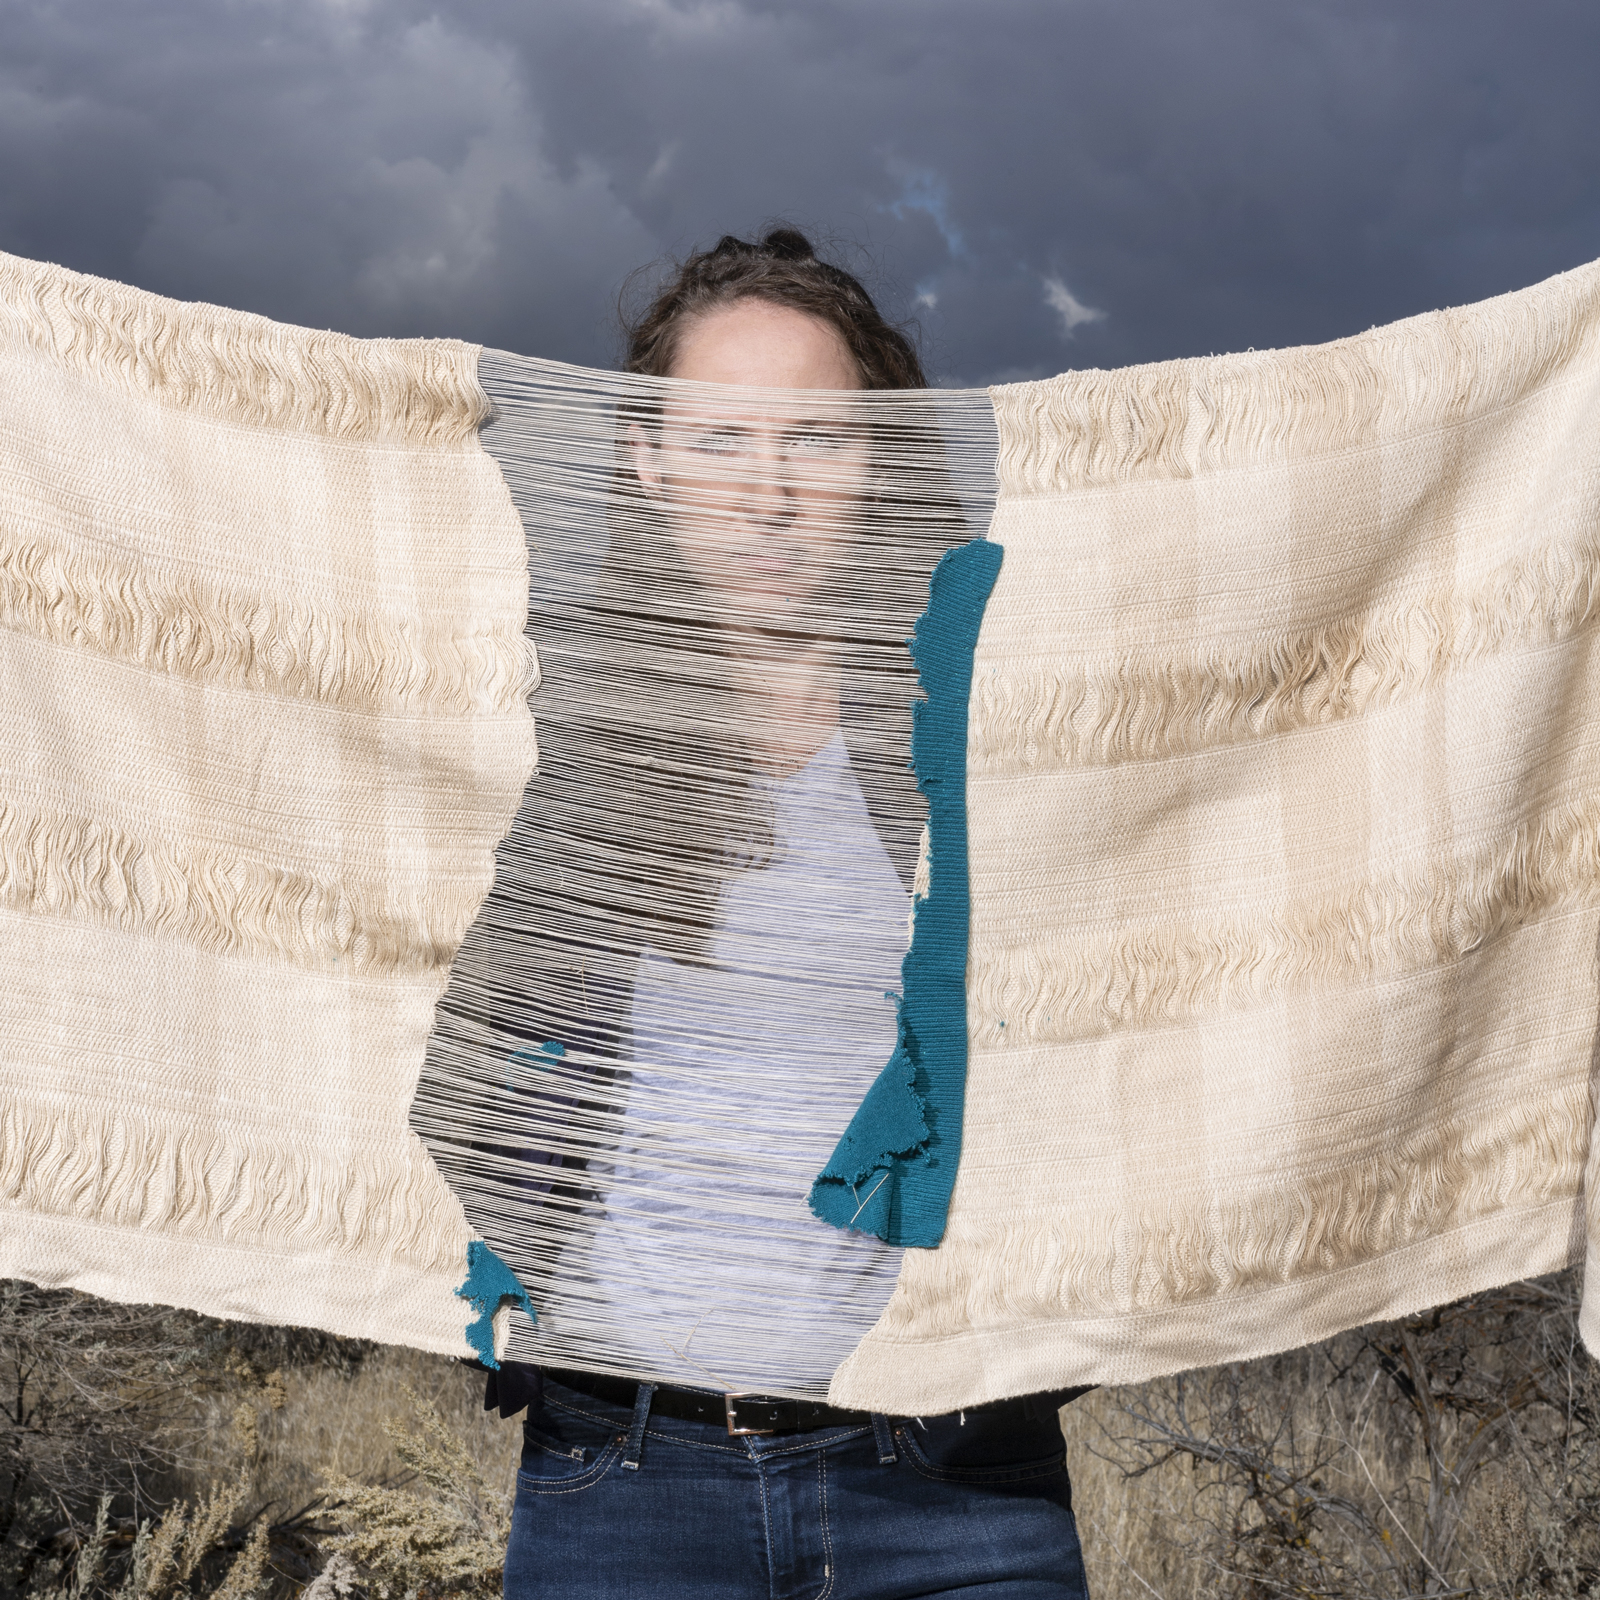 Artist Lily Lee holding burial shroud in front of her face